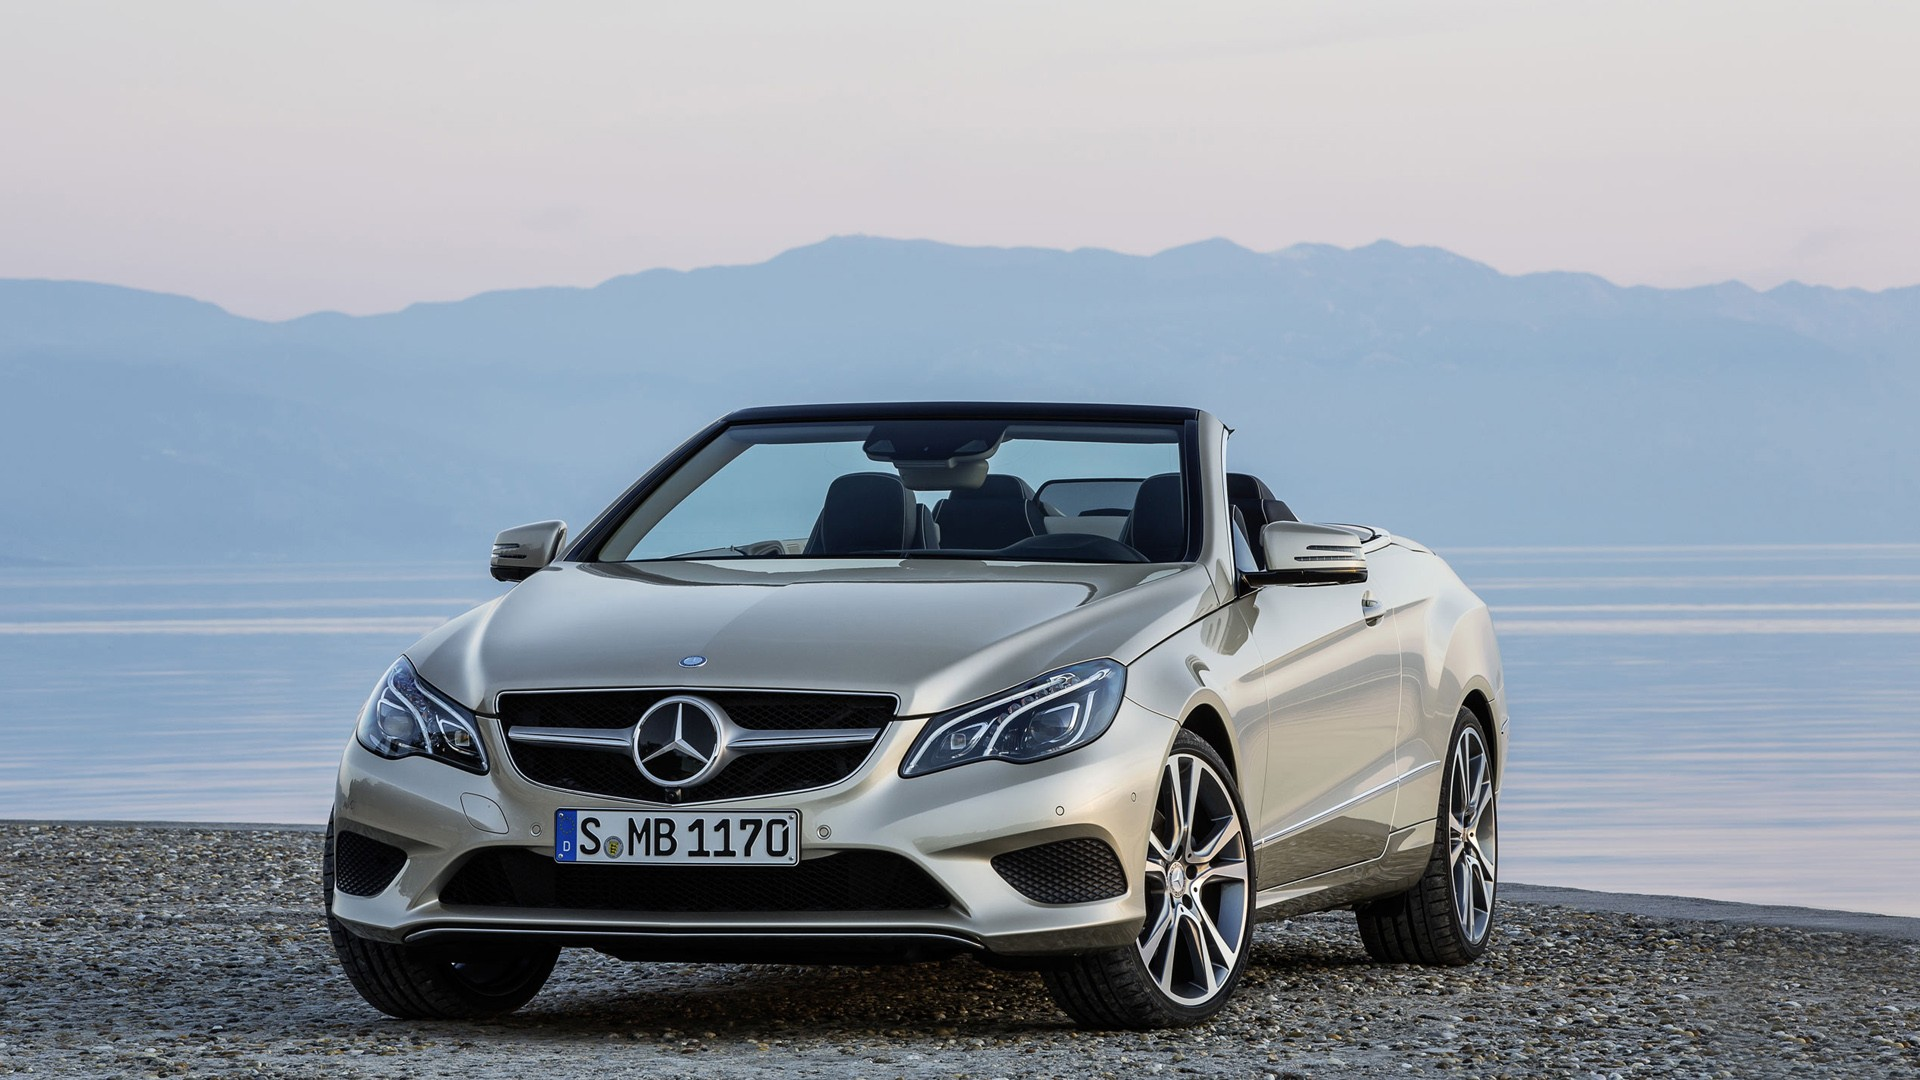 2014 mercedes benz e class cabriolet wallpaper in 1920x1080 resolution. Cars Review. Best American Auto & Cars Review